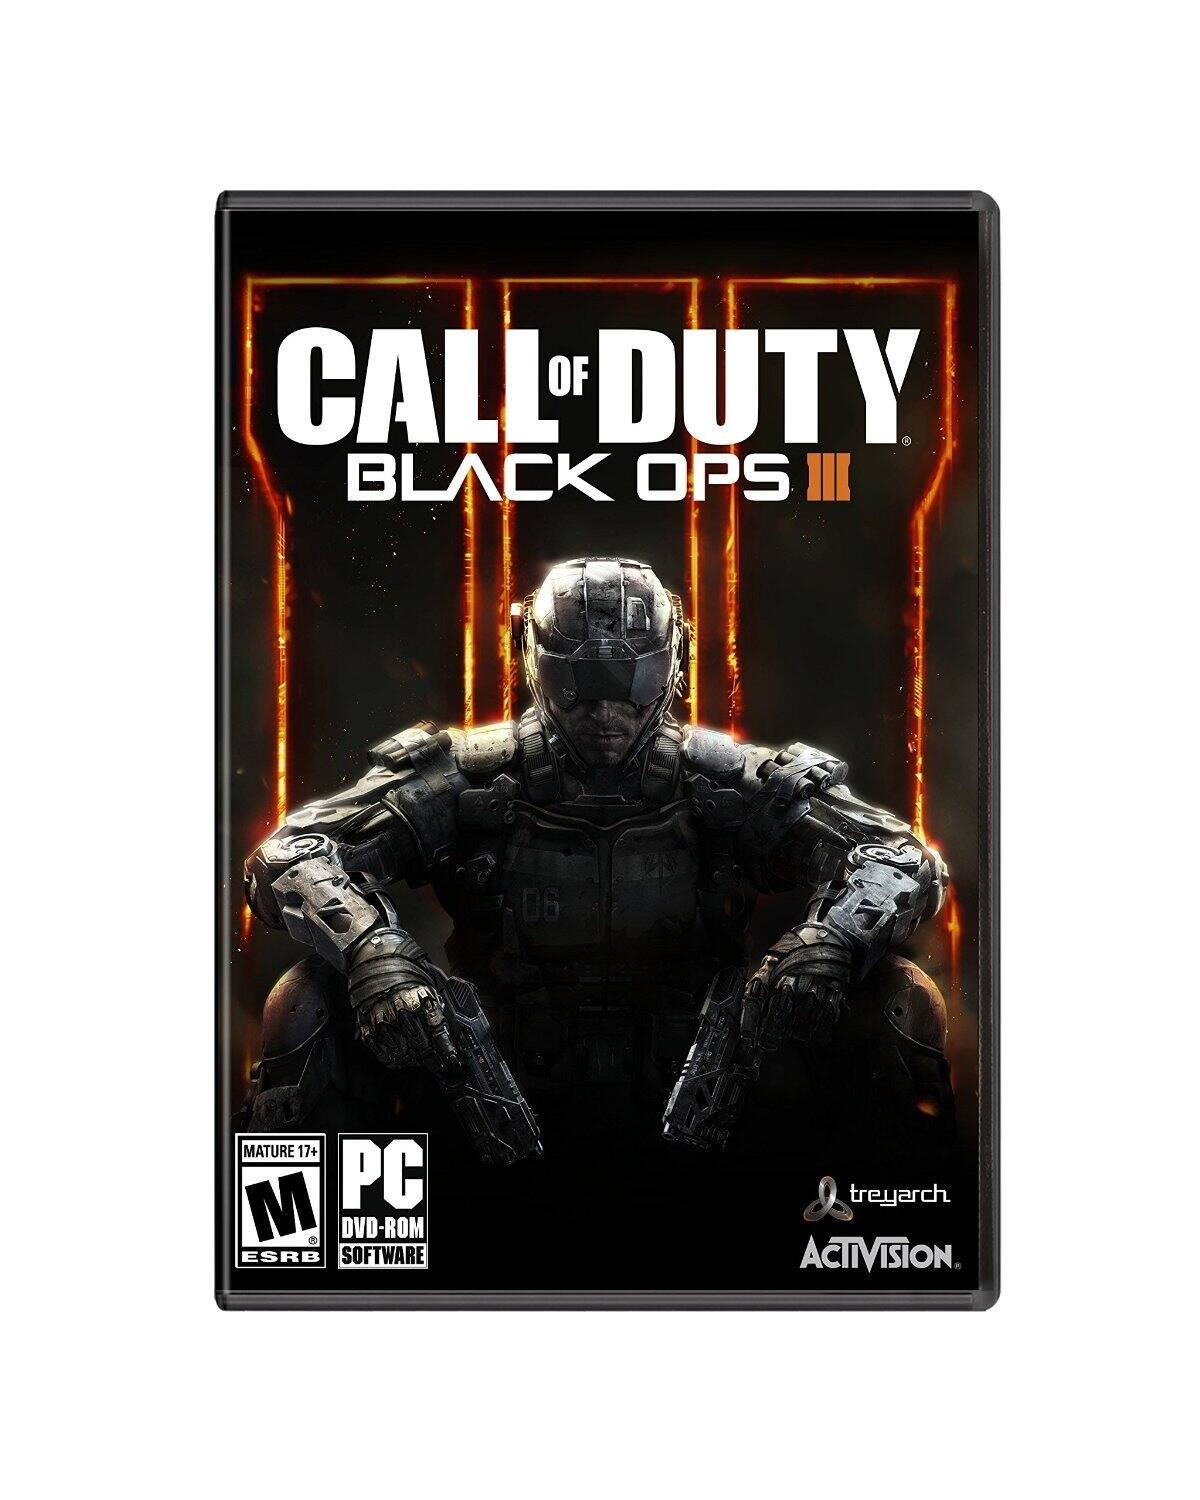 Call of Duty: Black Ops III (PC Game)  $21